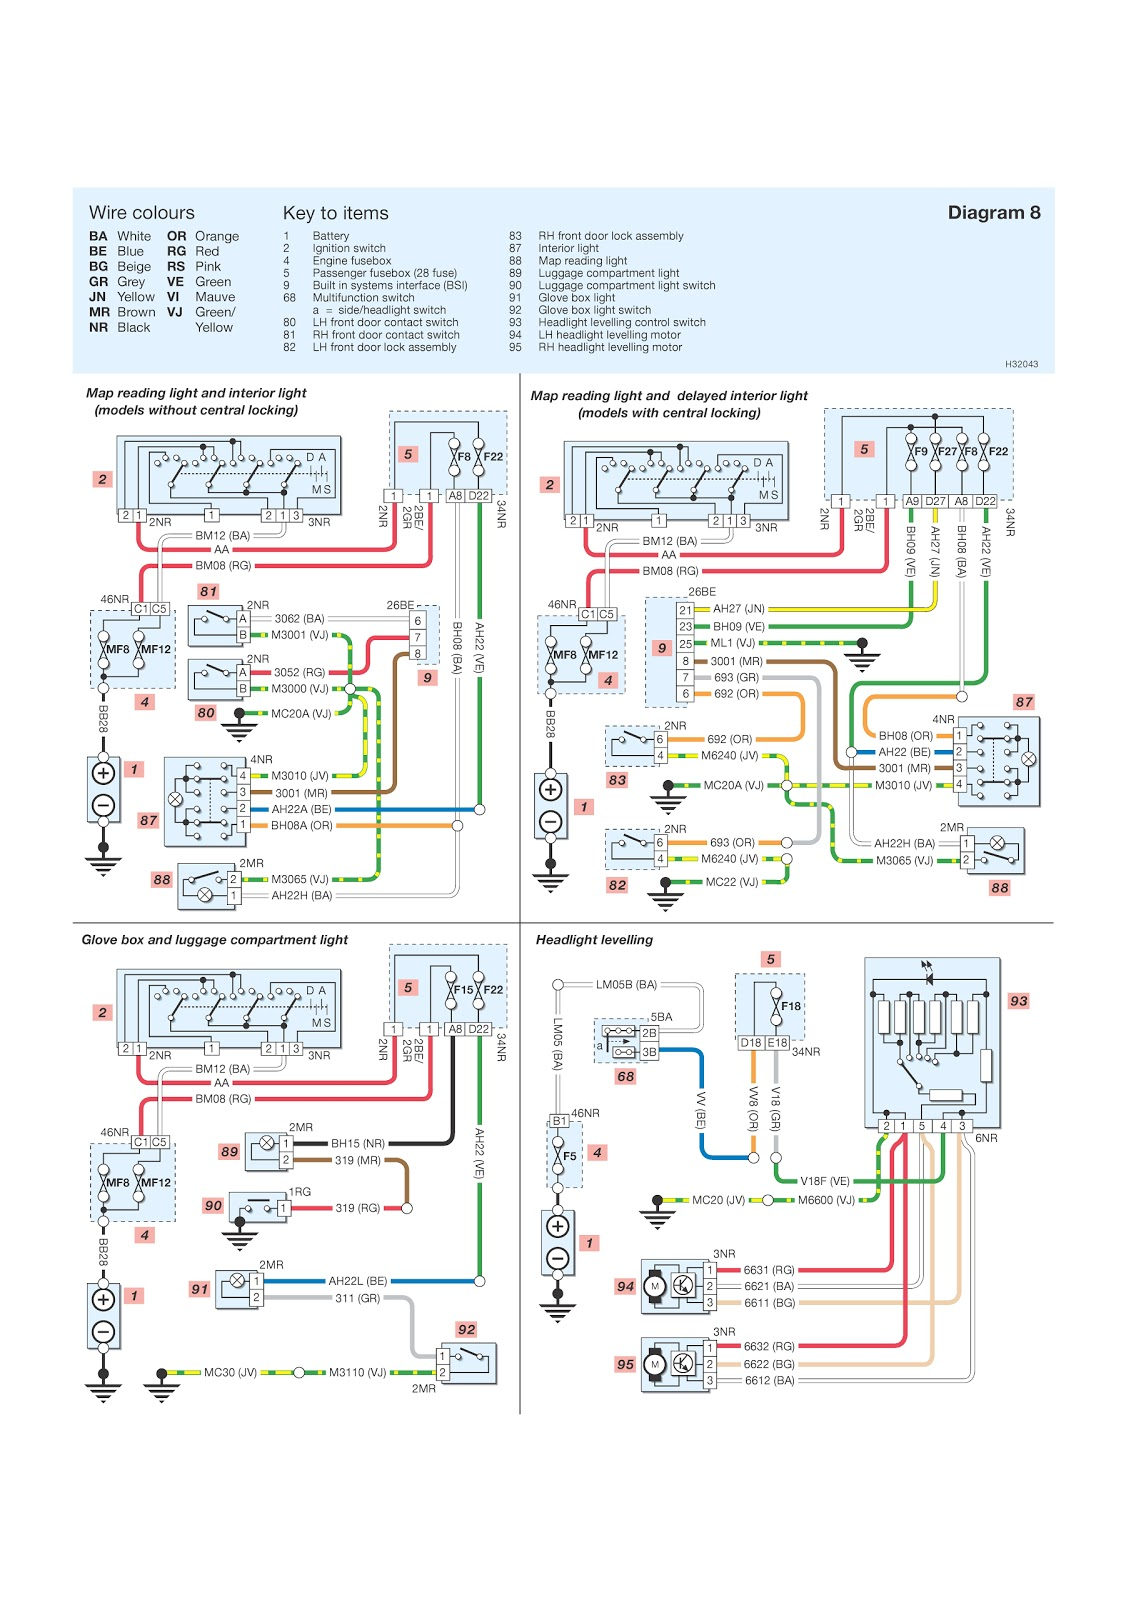 Amazing Peugeot 307 Abs Wiring Fault Online Wiring Diagram Wiring Cloud Timewinrebemohammedshrineorg